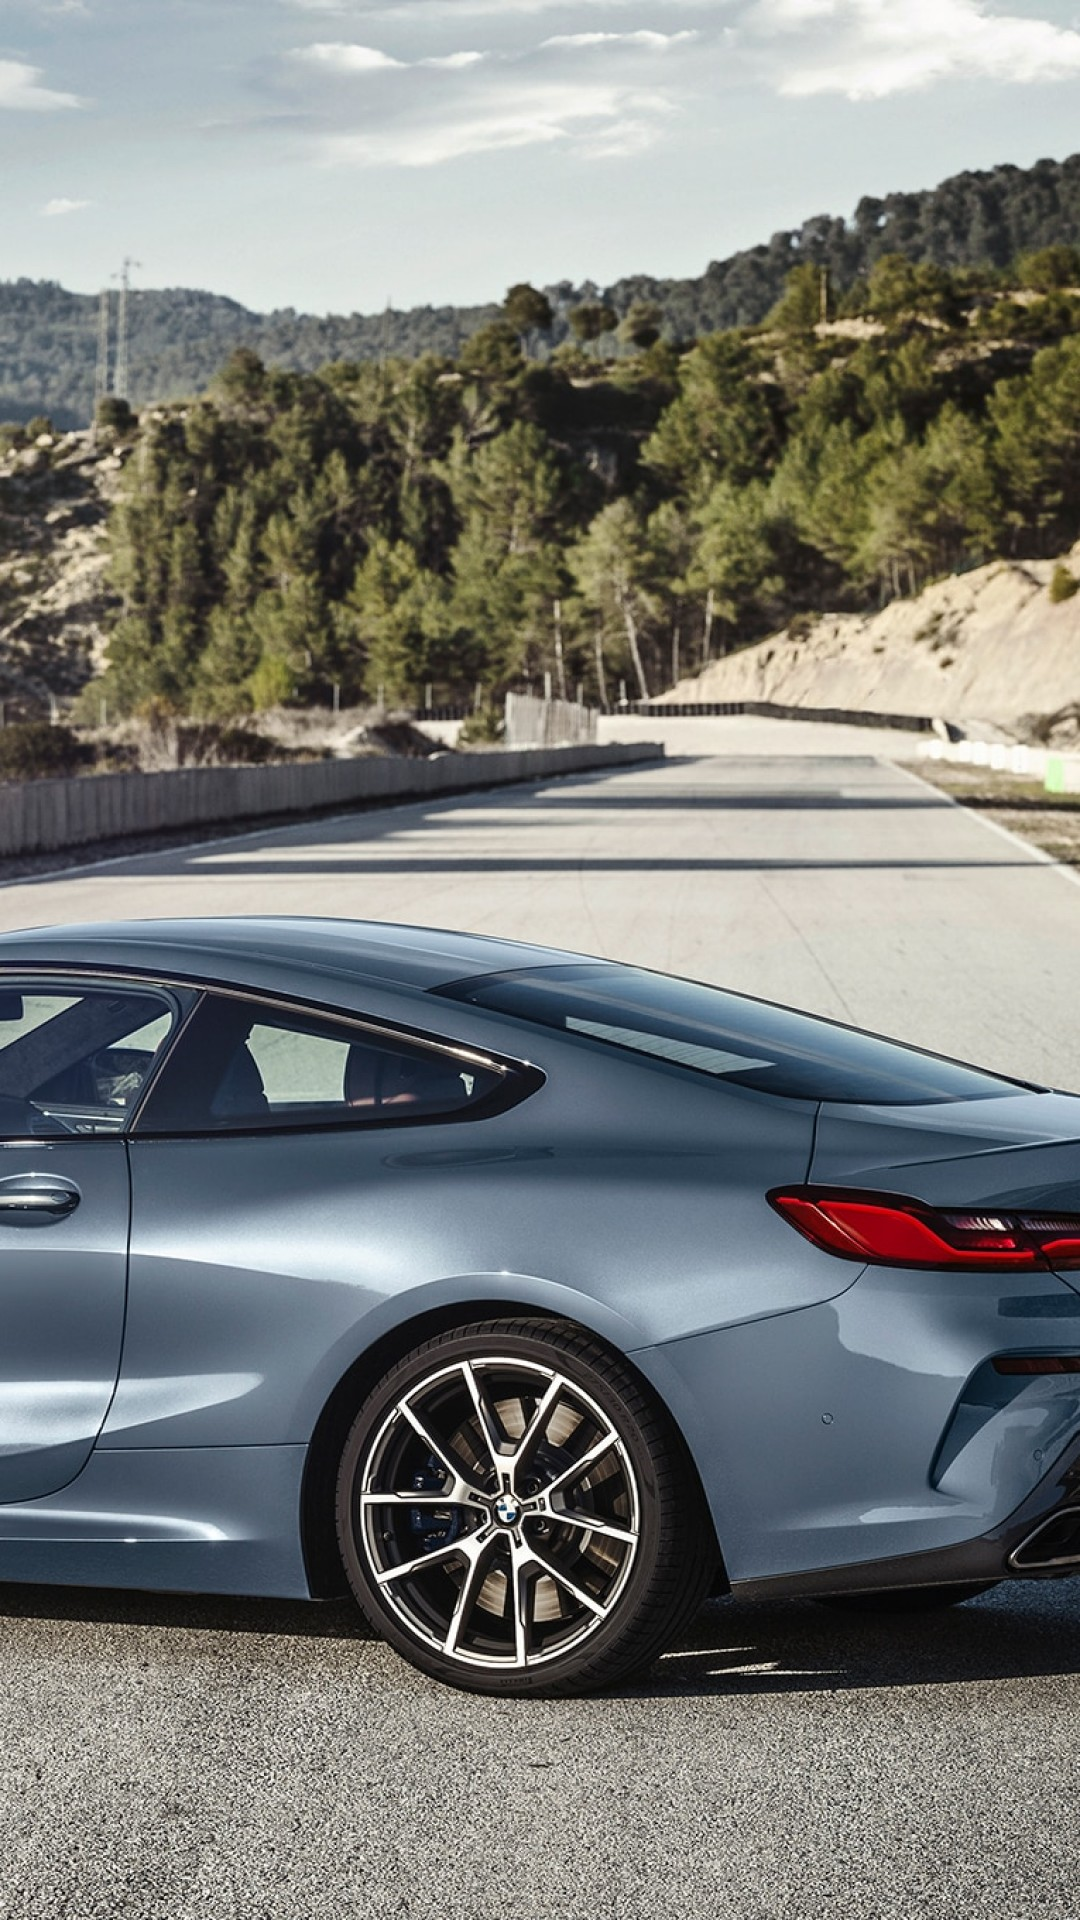 Wallpaper BMW 8-Series Coupe, 2019 Cars, Cars & Bikes #19236